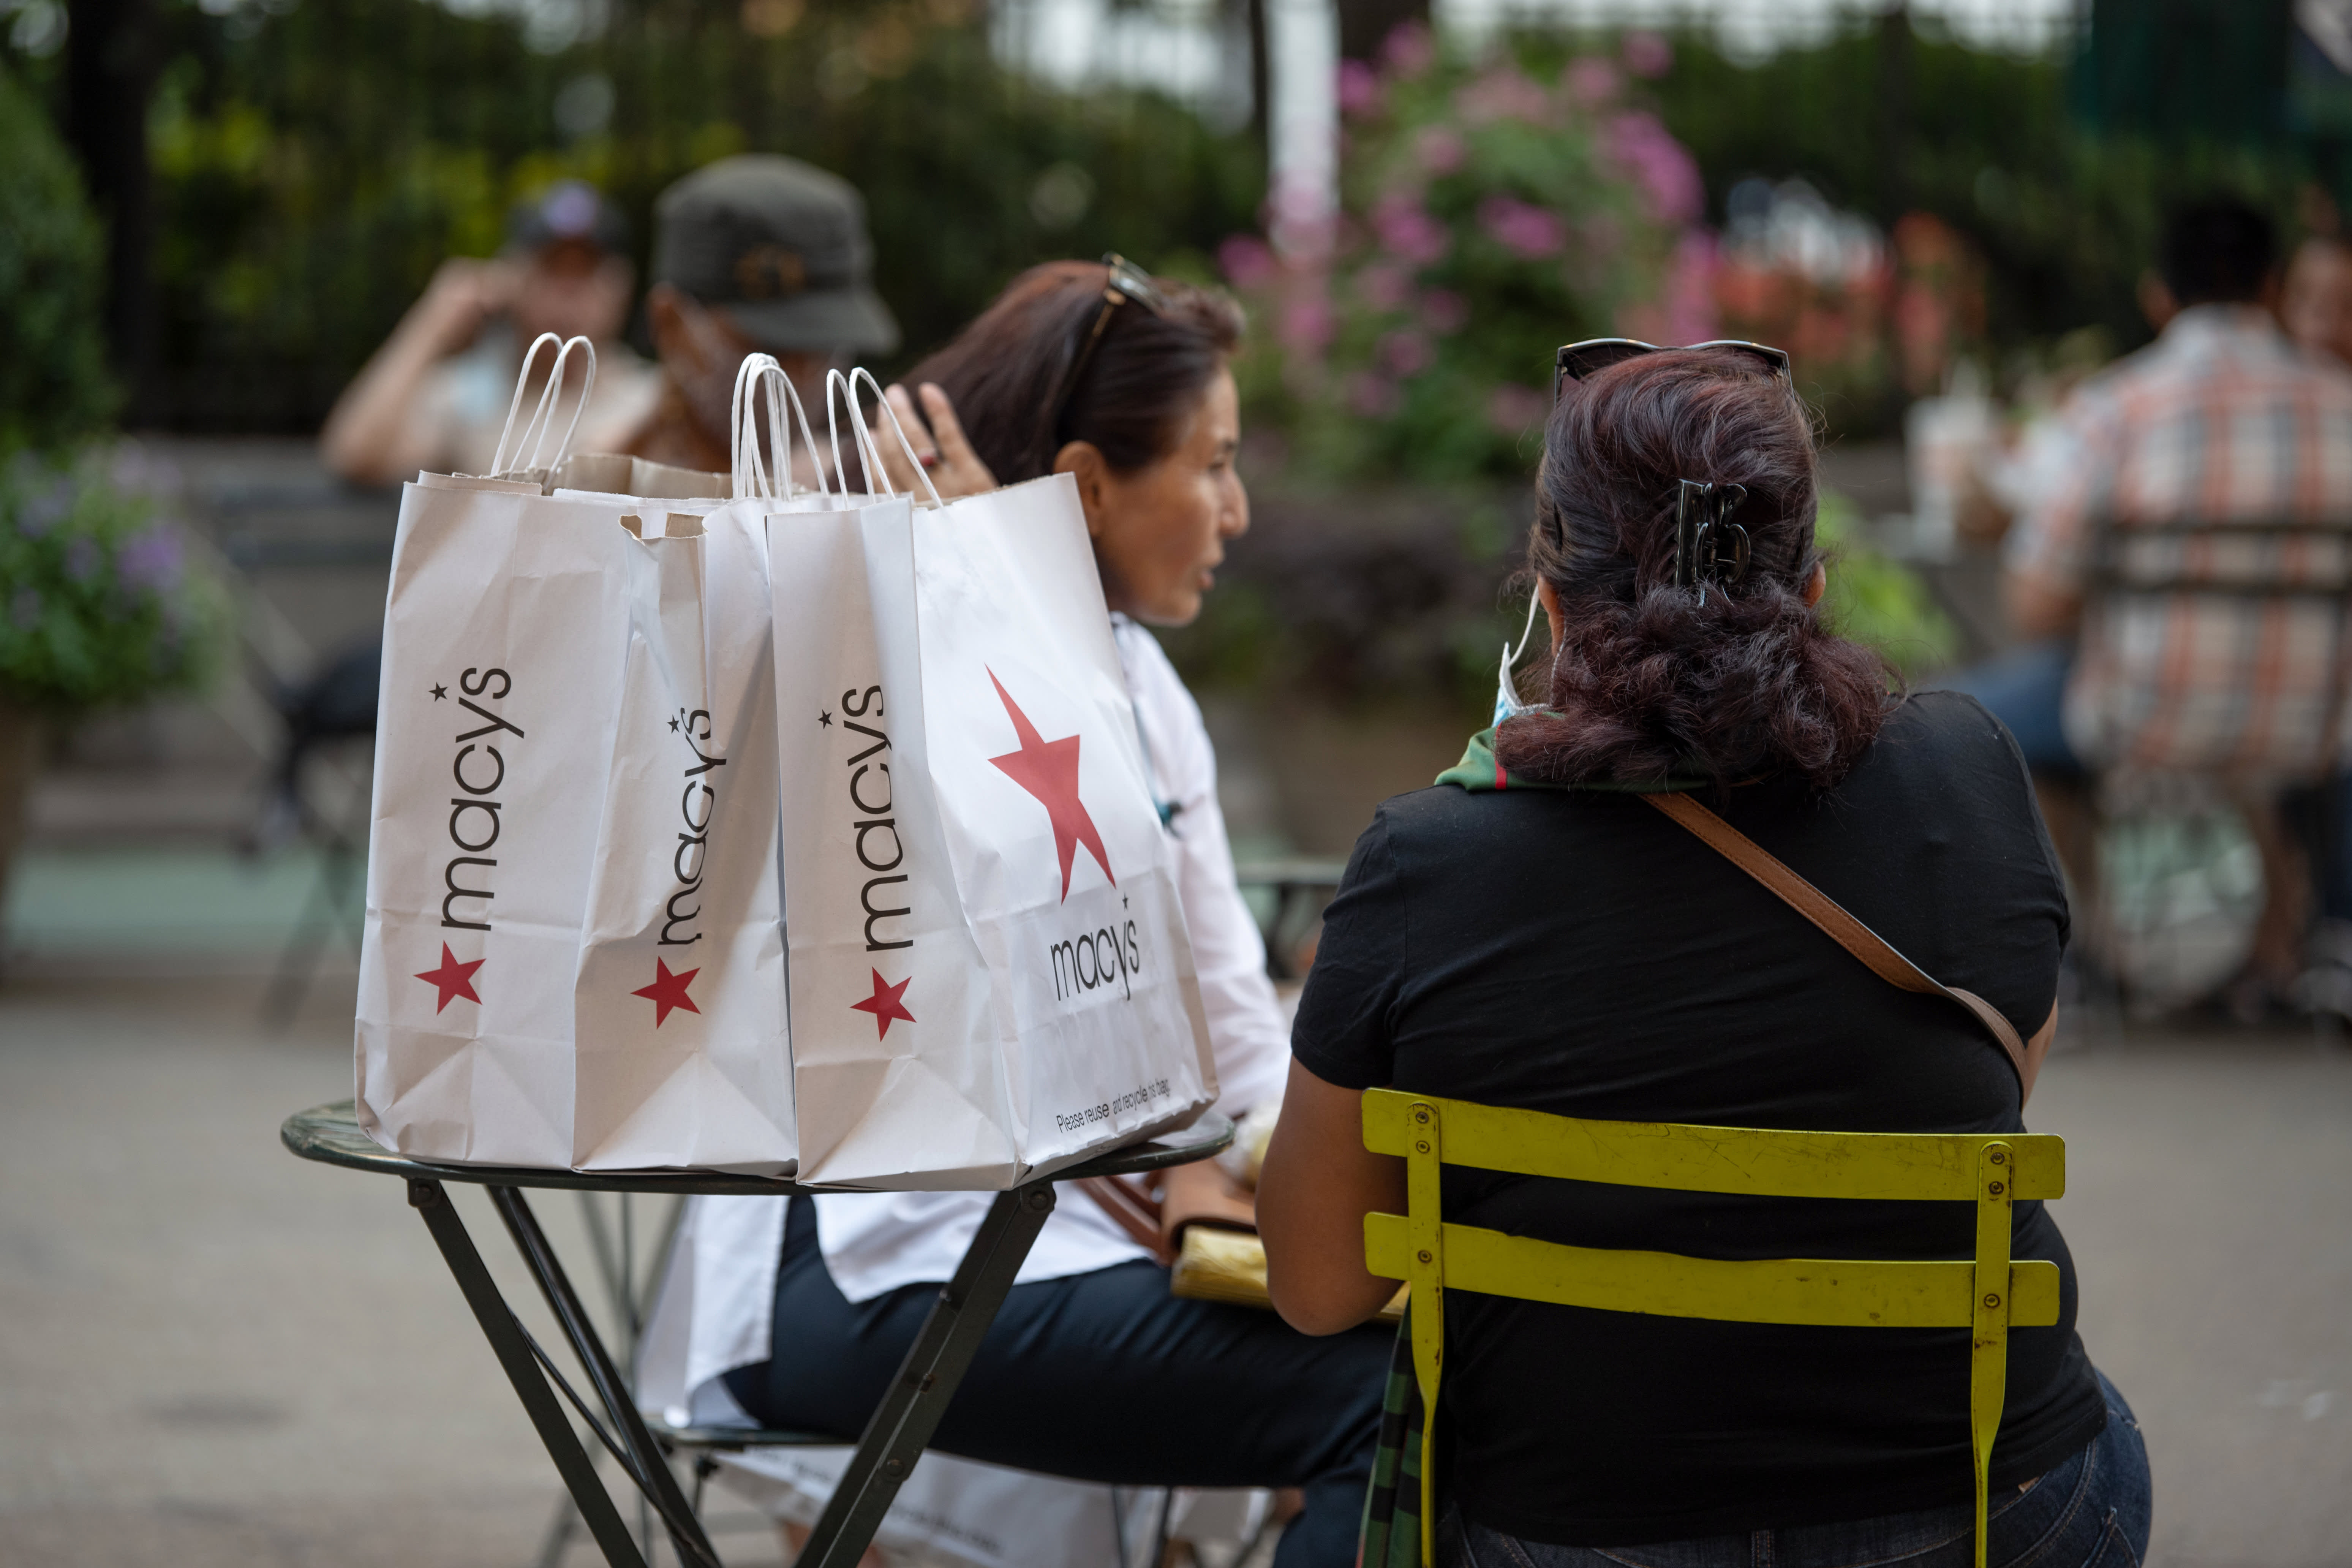 Macy's may face more temporary store closures as Covid cases climb and threaten crucial holiday shopping season CEO says – CNBC